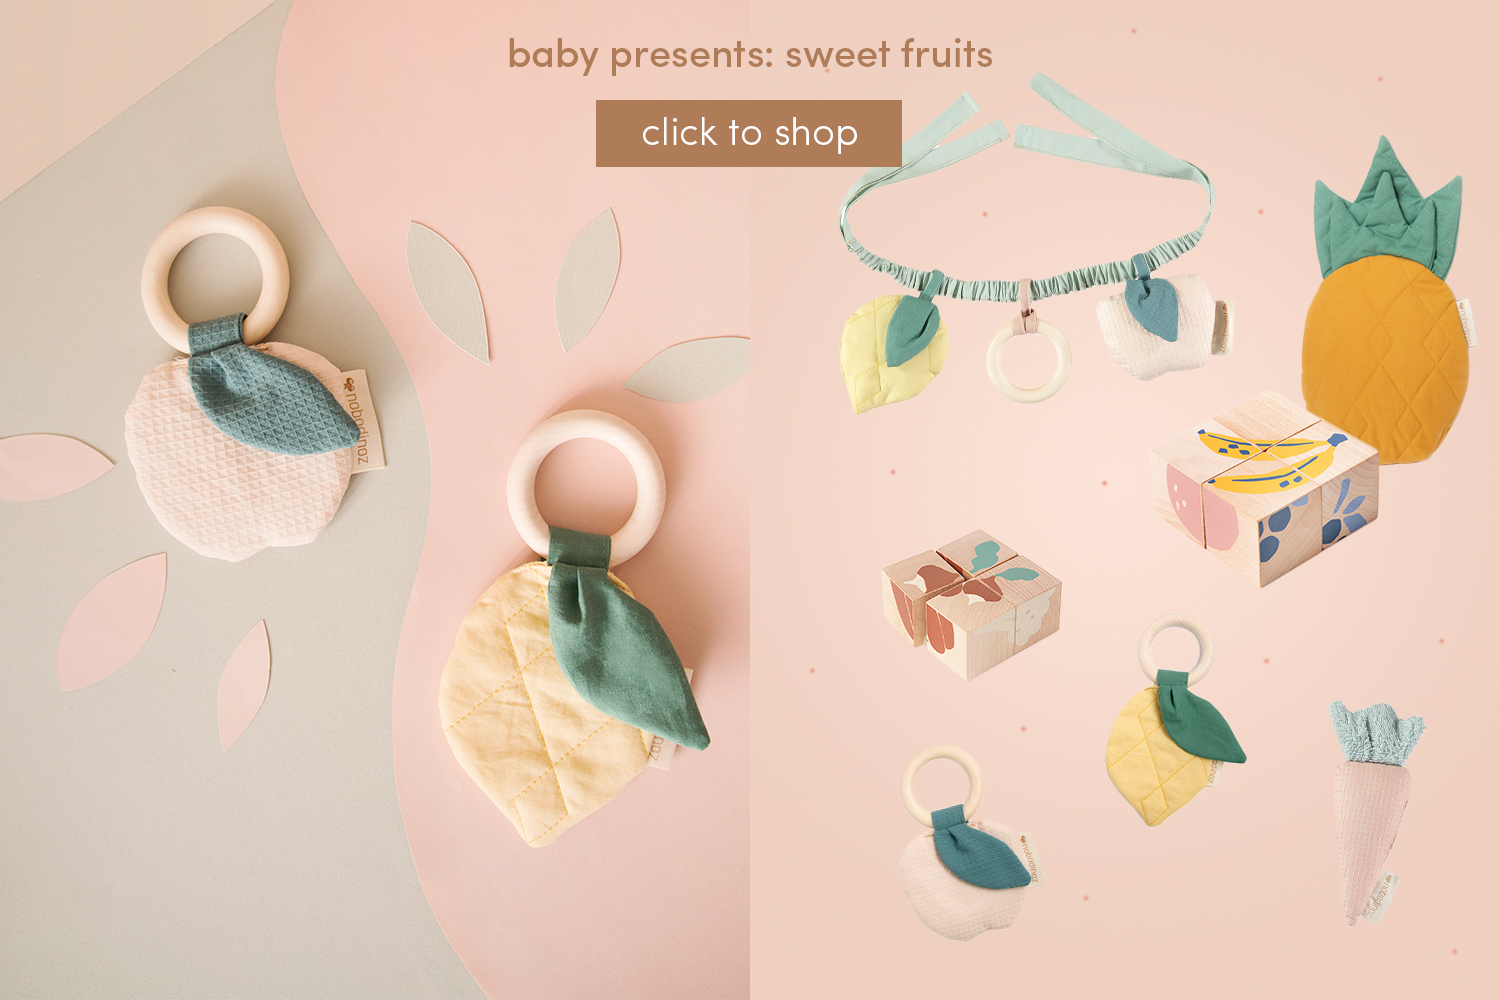 Baby presents: Sweet fruits